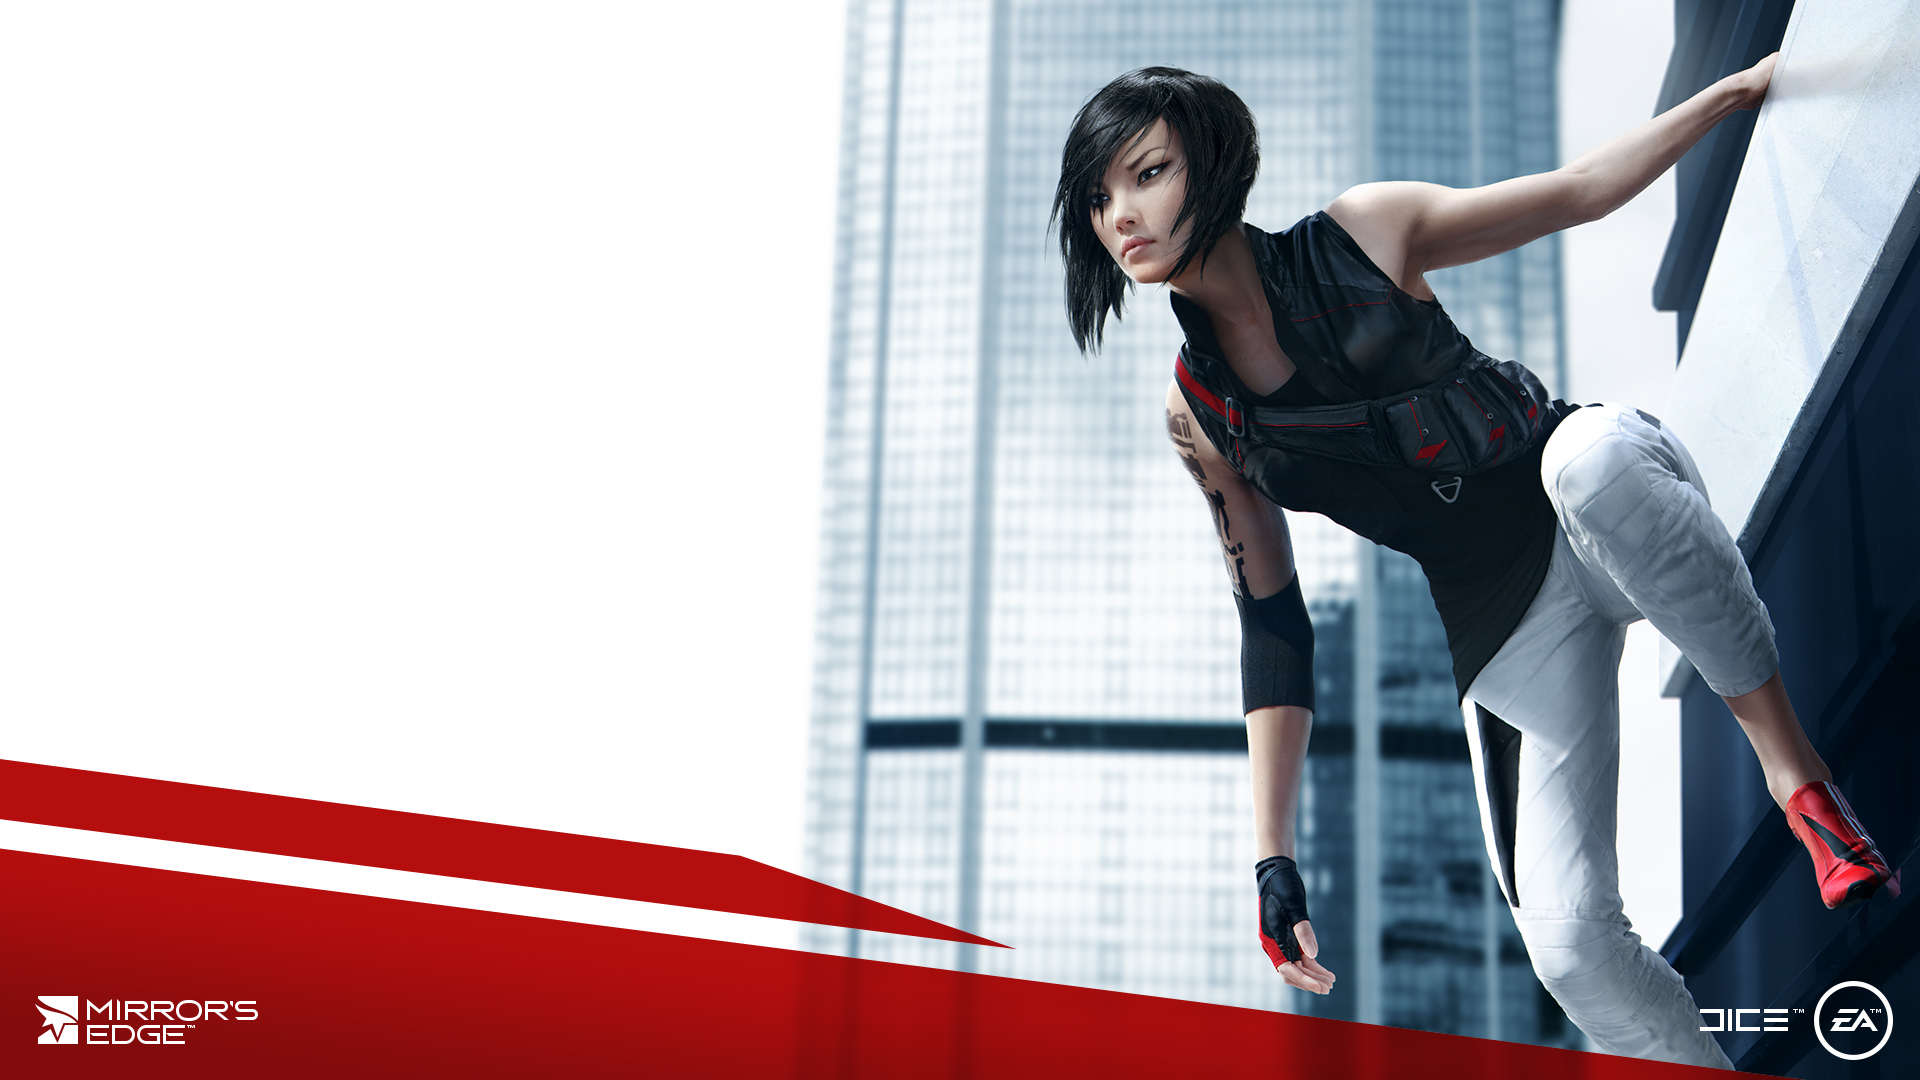 Mirror's Edge 2 Game